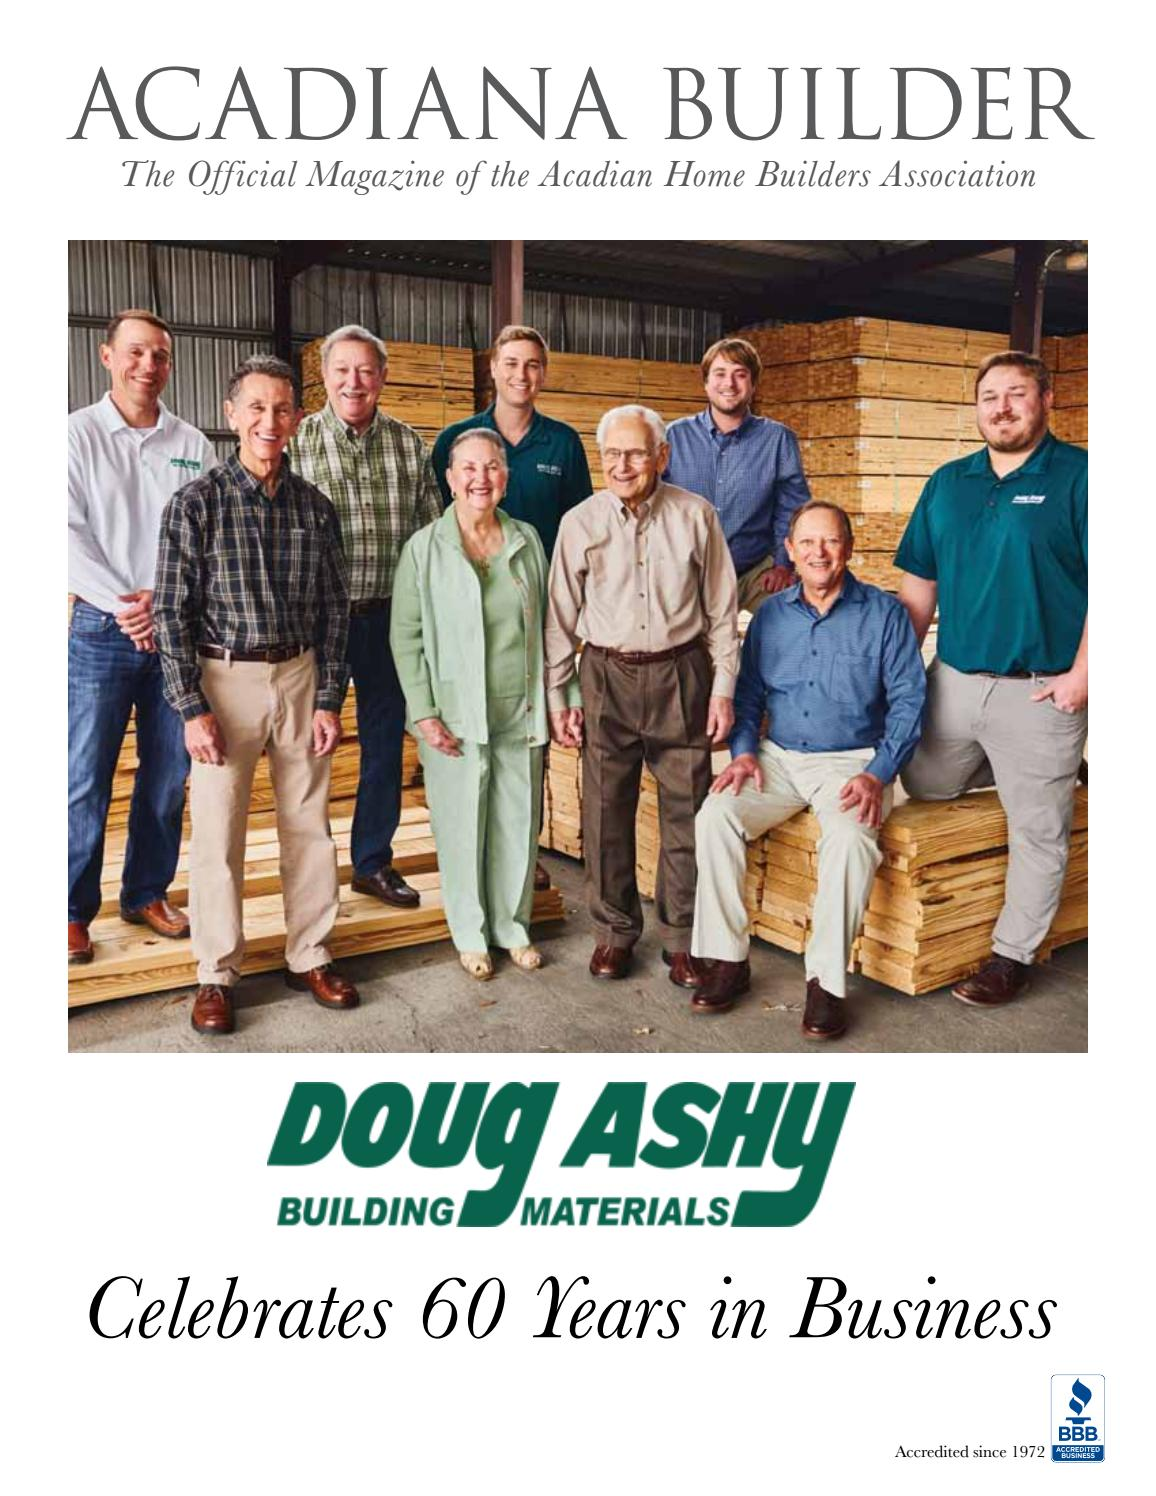 Doug Ashy Celebrating 60 Years In Business By Acadianabuilder Issuu